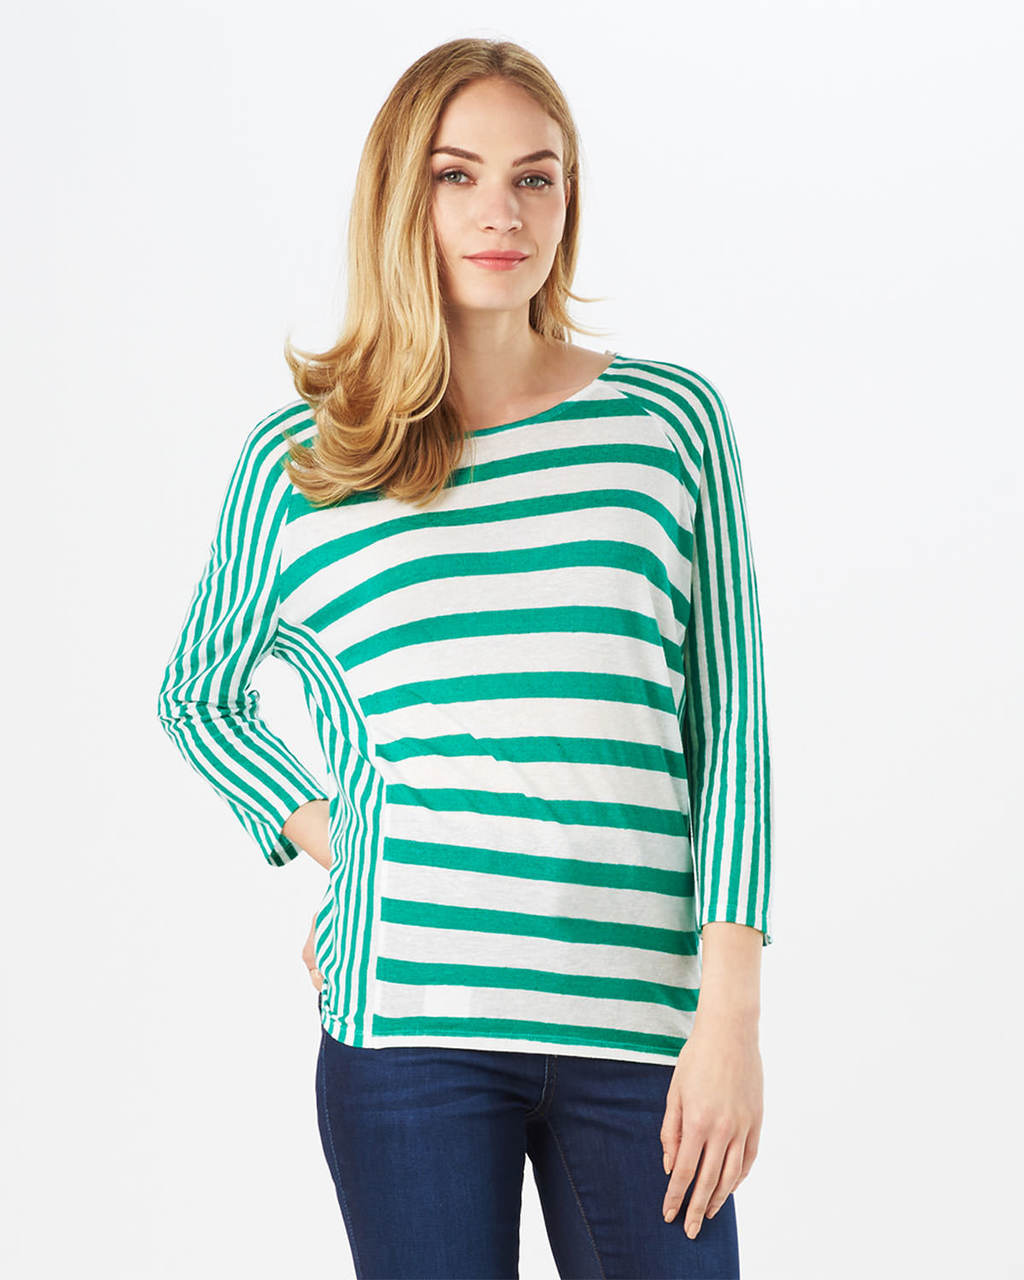 Carris Stripe Top - neckline: round neck; sleeve style: dolman/batwing; pattern: horizontal stripes; style: t-shirt; secondary colour: white; predominant colour: emerald green; occasions: casual; length: standard; fibres: polyester/polyamide - stretch; fit: body skimming; sleeve length: 3/4 length; pattern type: fabric; pattern size: standard; texture group: jersey - stretchy/drapey; season: s/s 2016